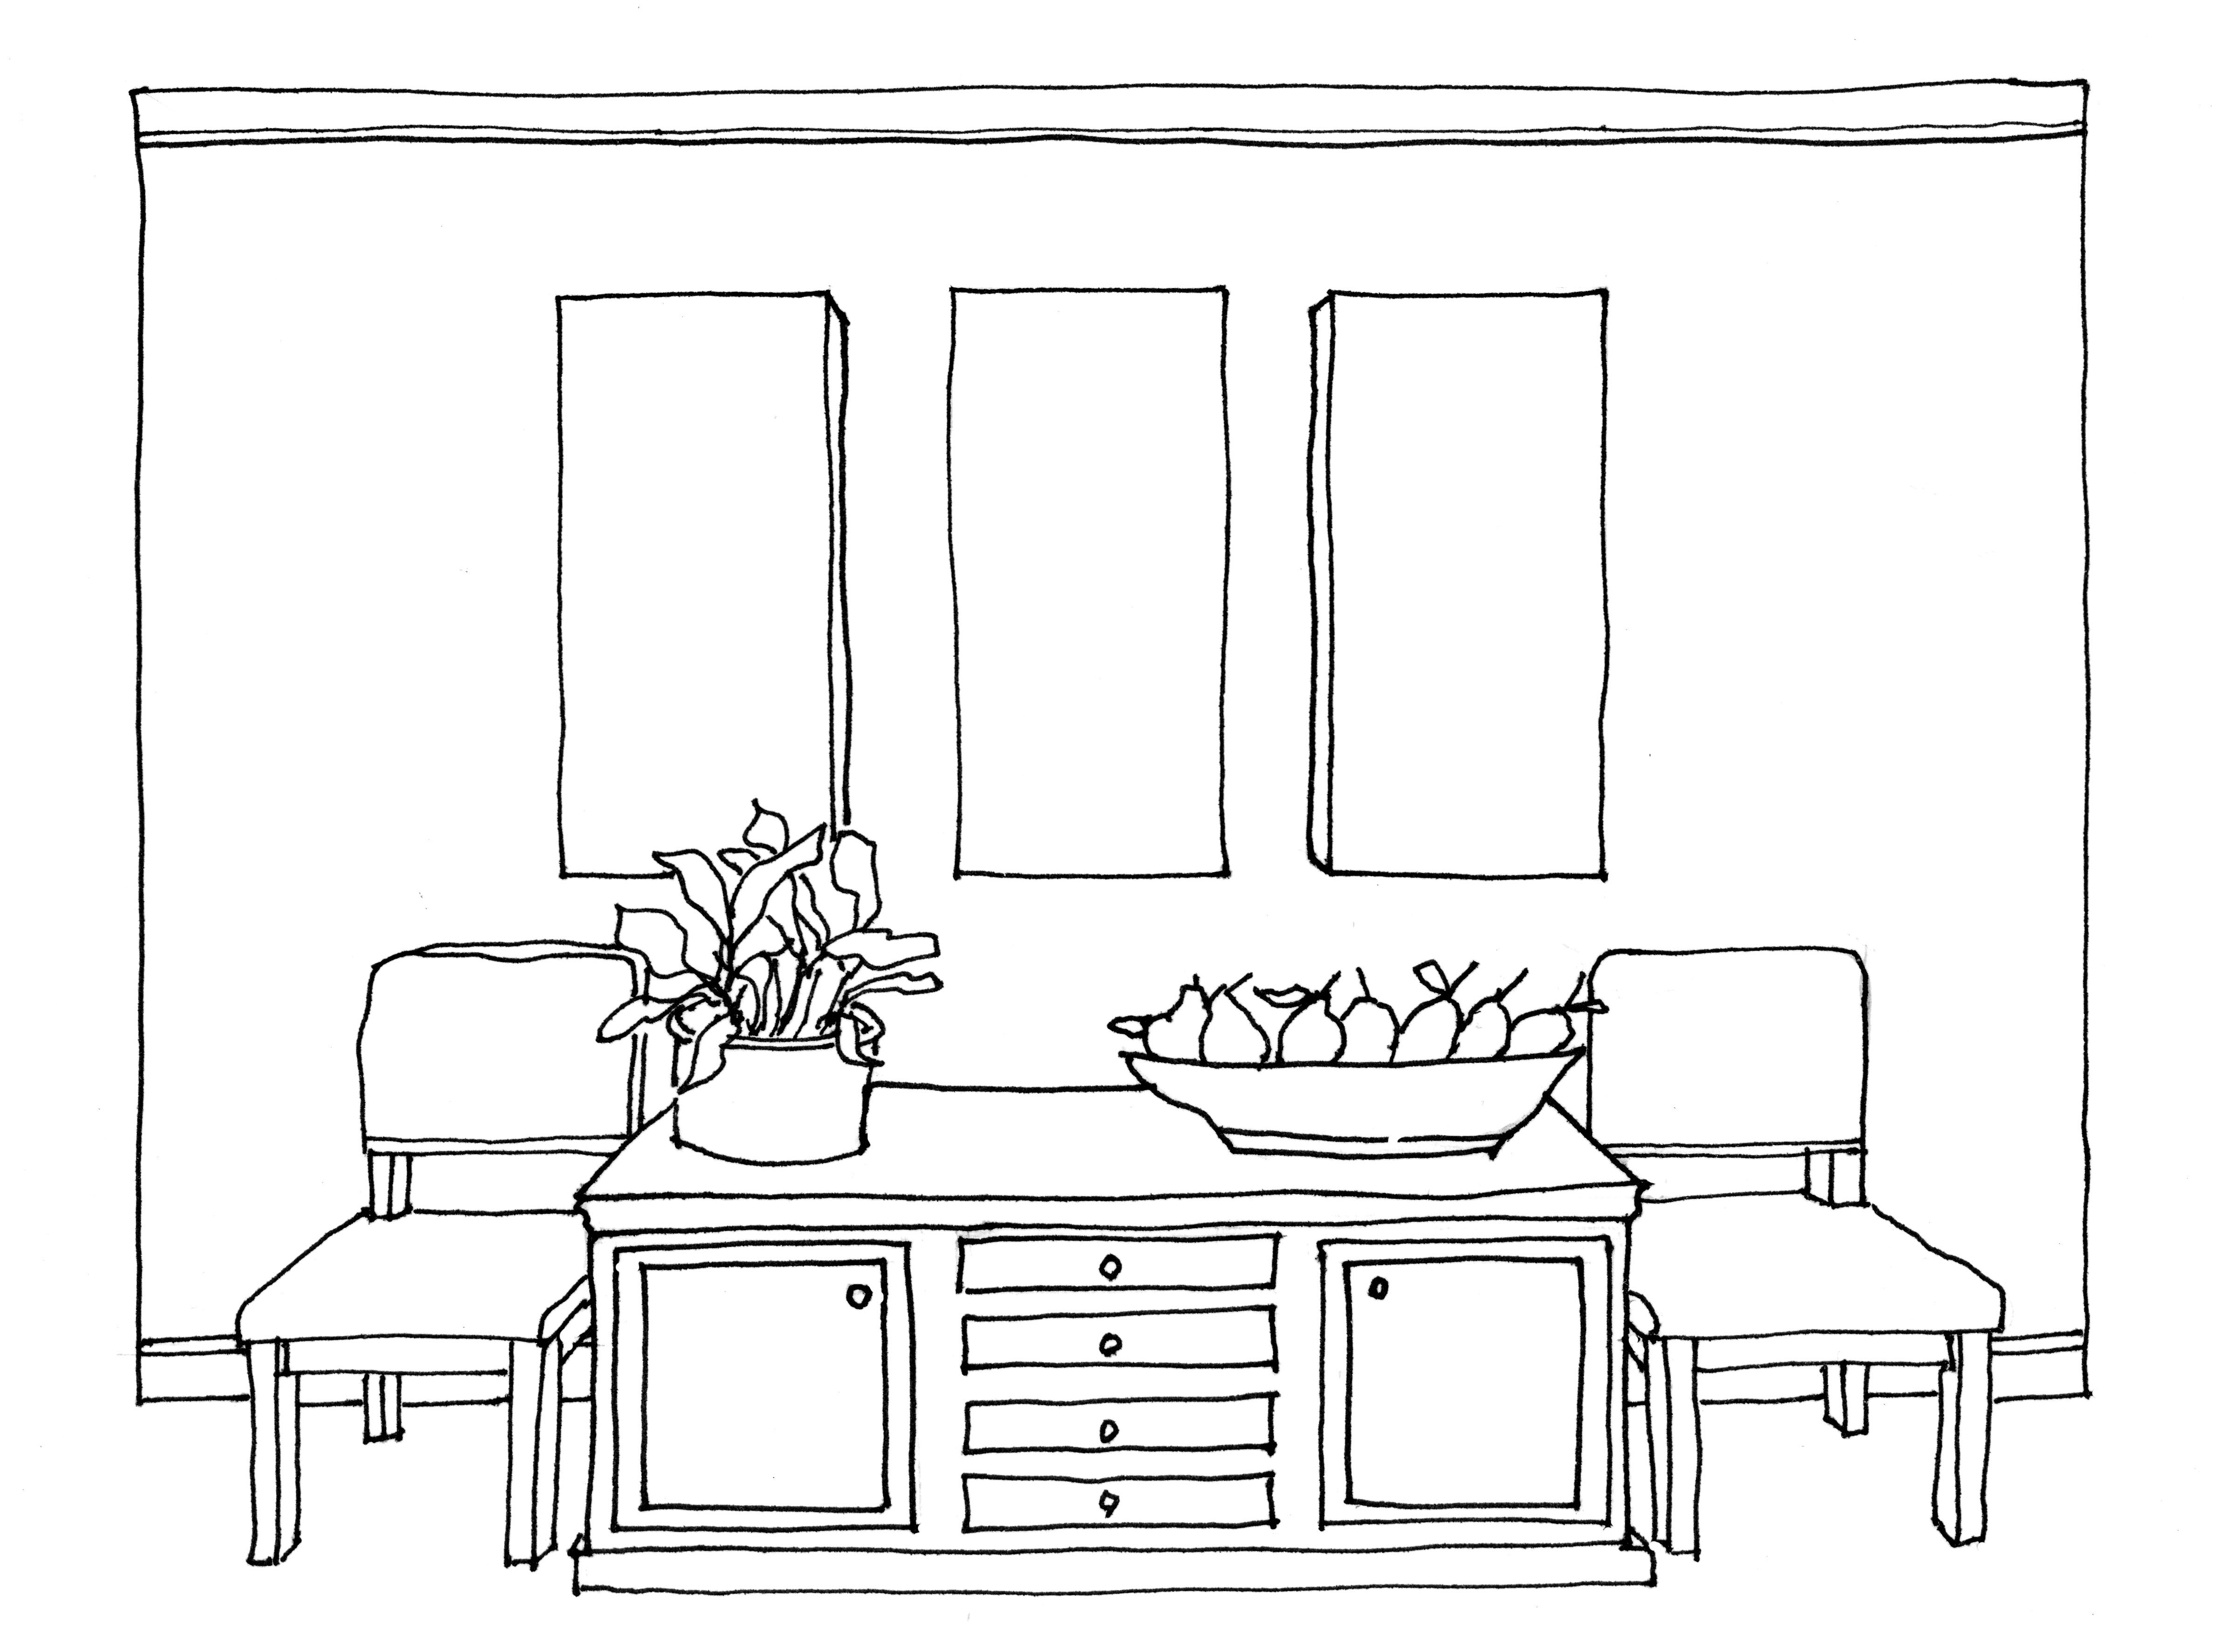 Drawn bedroom hand sketch One this Perspective Drawing In